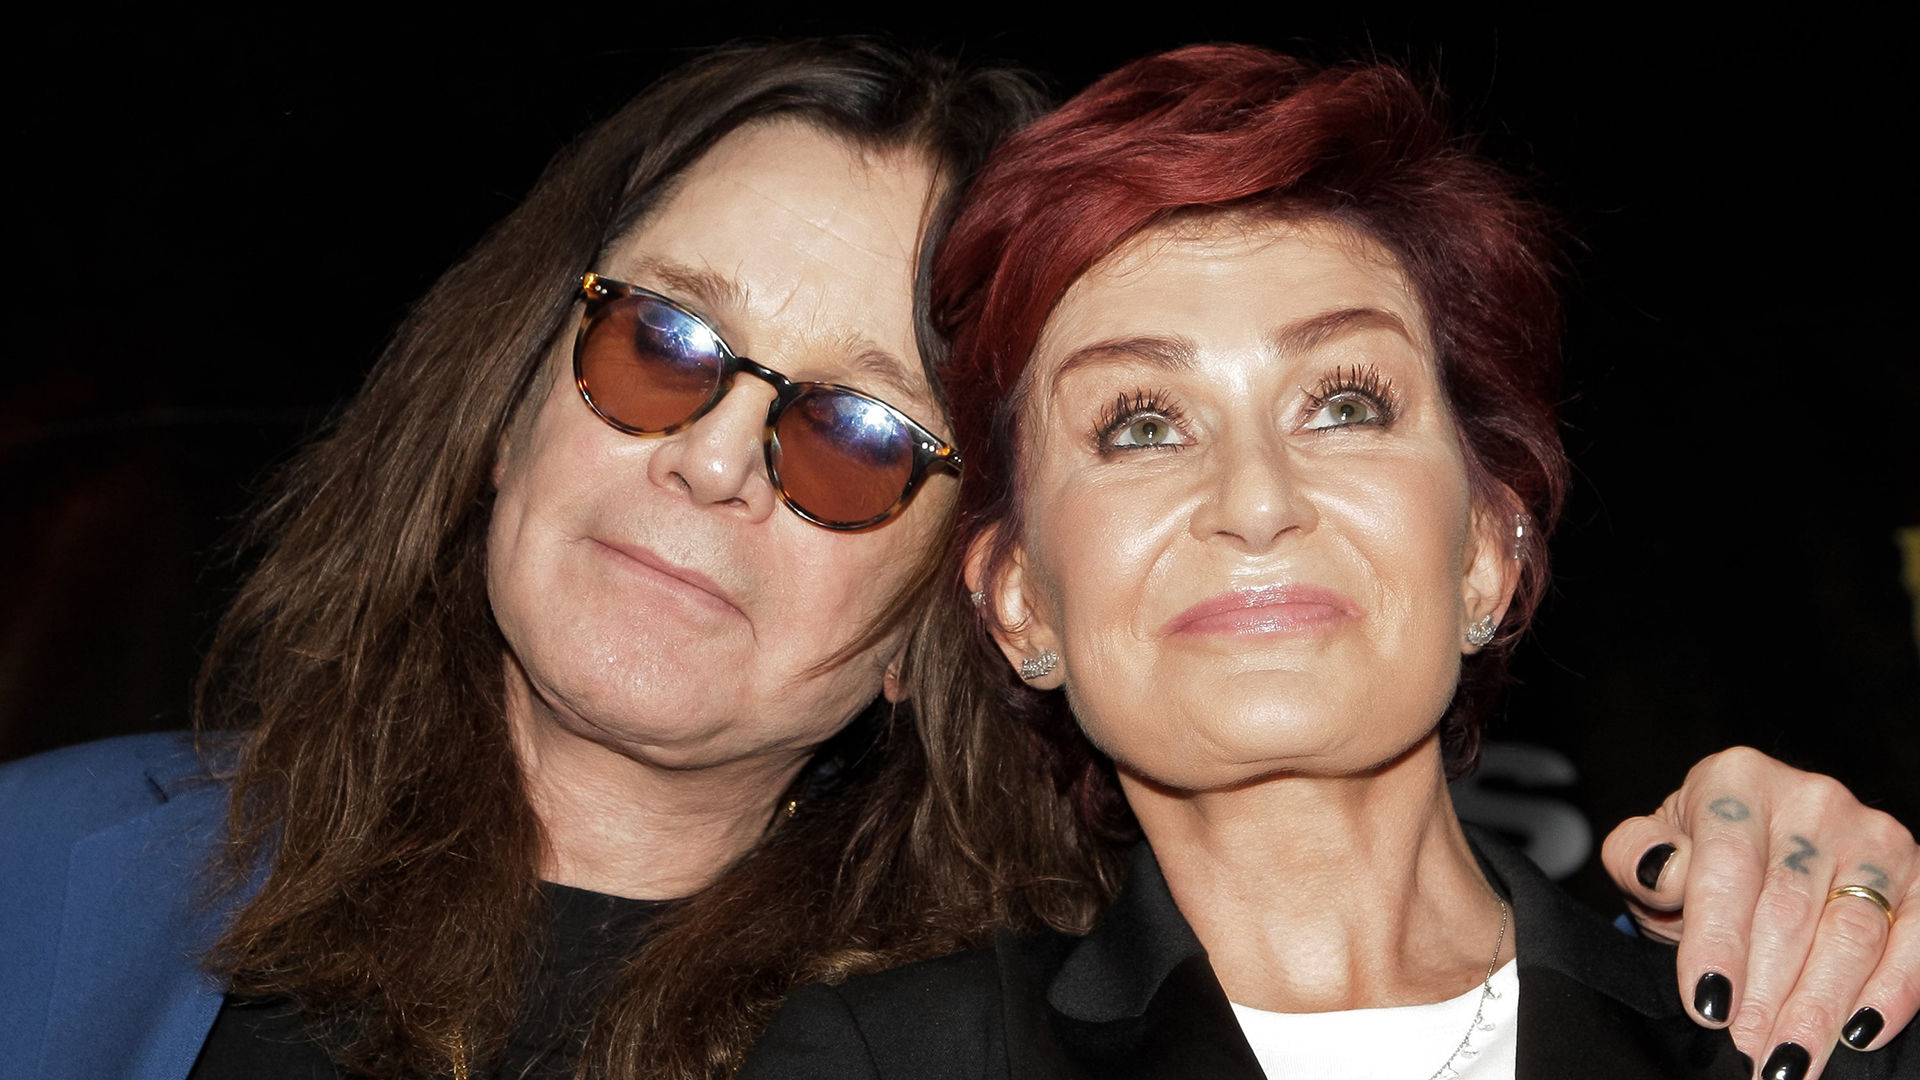 Sharon Osbourne confirms she and Ozzy are 'back on' as a couple - TODAY.com